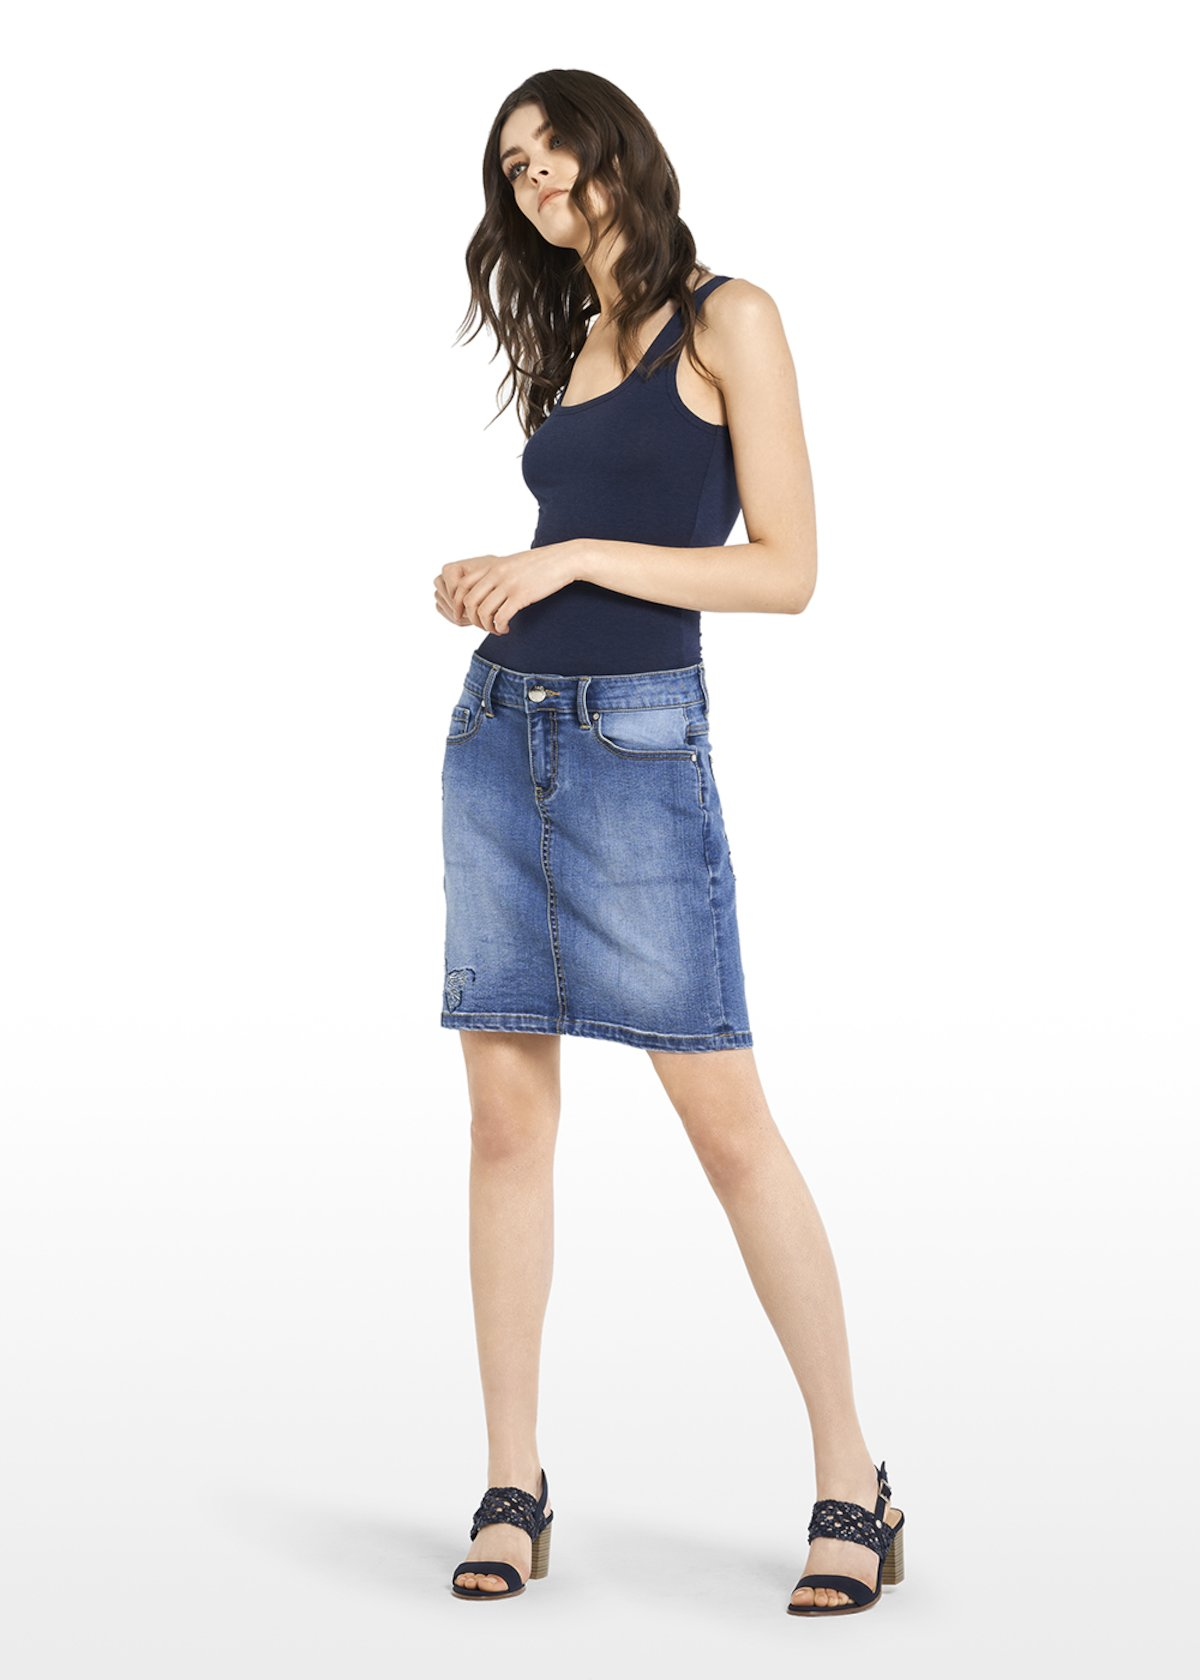 Gaylor Denim skirt with embroidered butterflies - Medium Denim - Woman - Category image